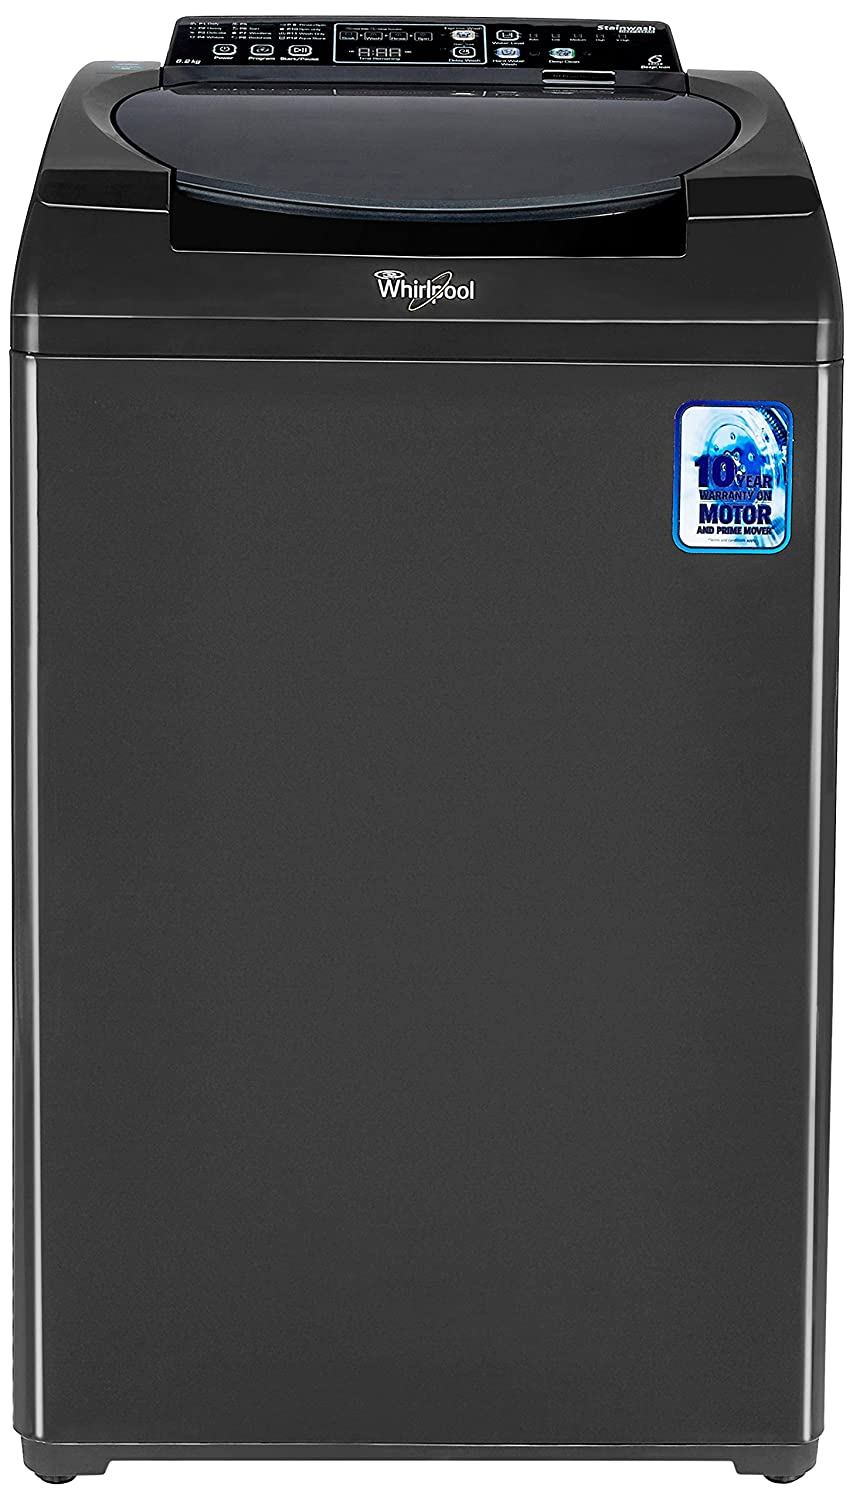 Whirlpool 6.2 kg Fully-Automatic Top Loading Washing Machine (Stainwash Deep Clean 62-Grey 10YMW, Grey)